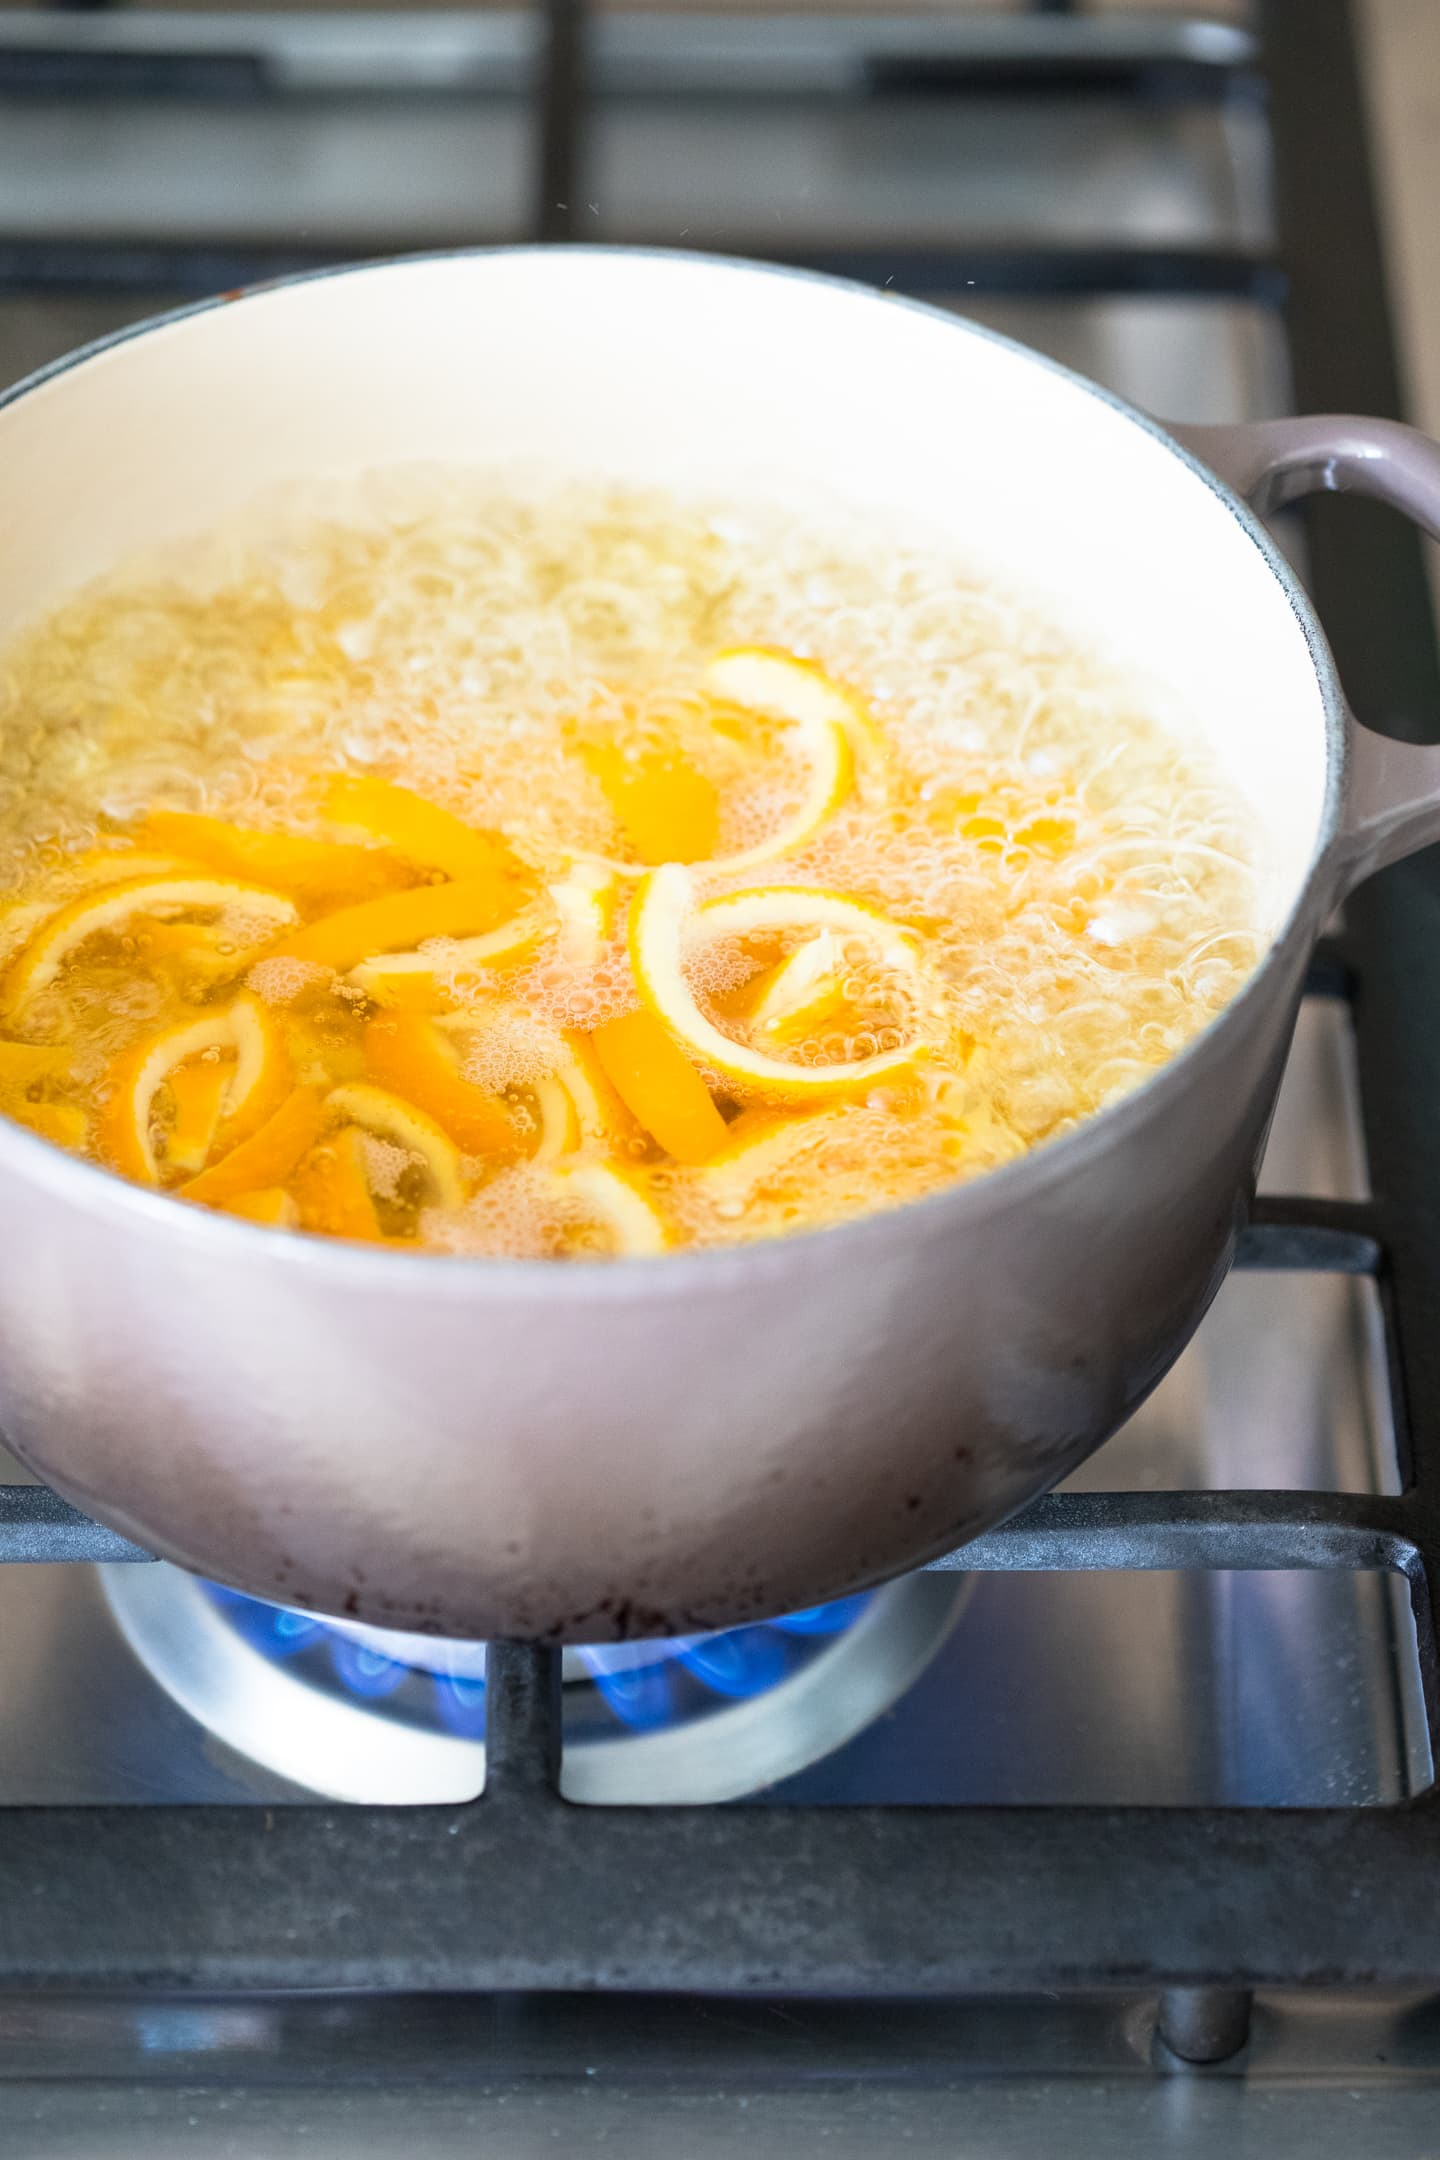 Angled view of orange peels being balanced in a pot on the stove.